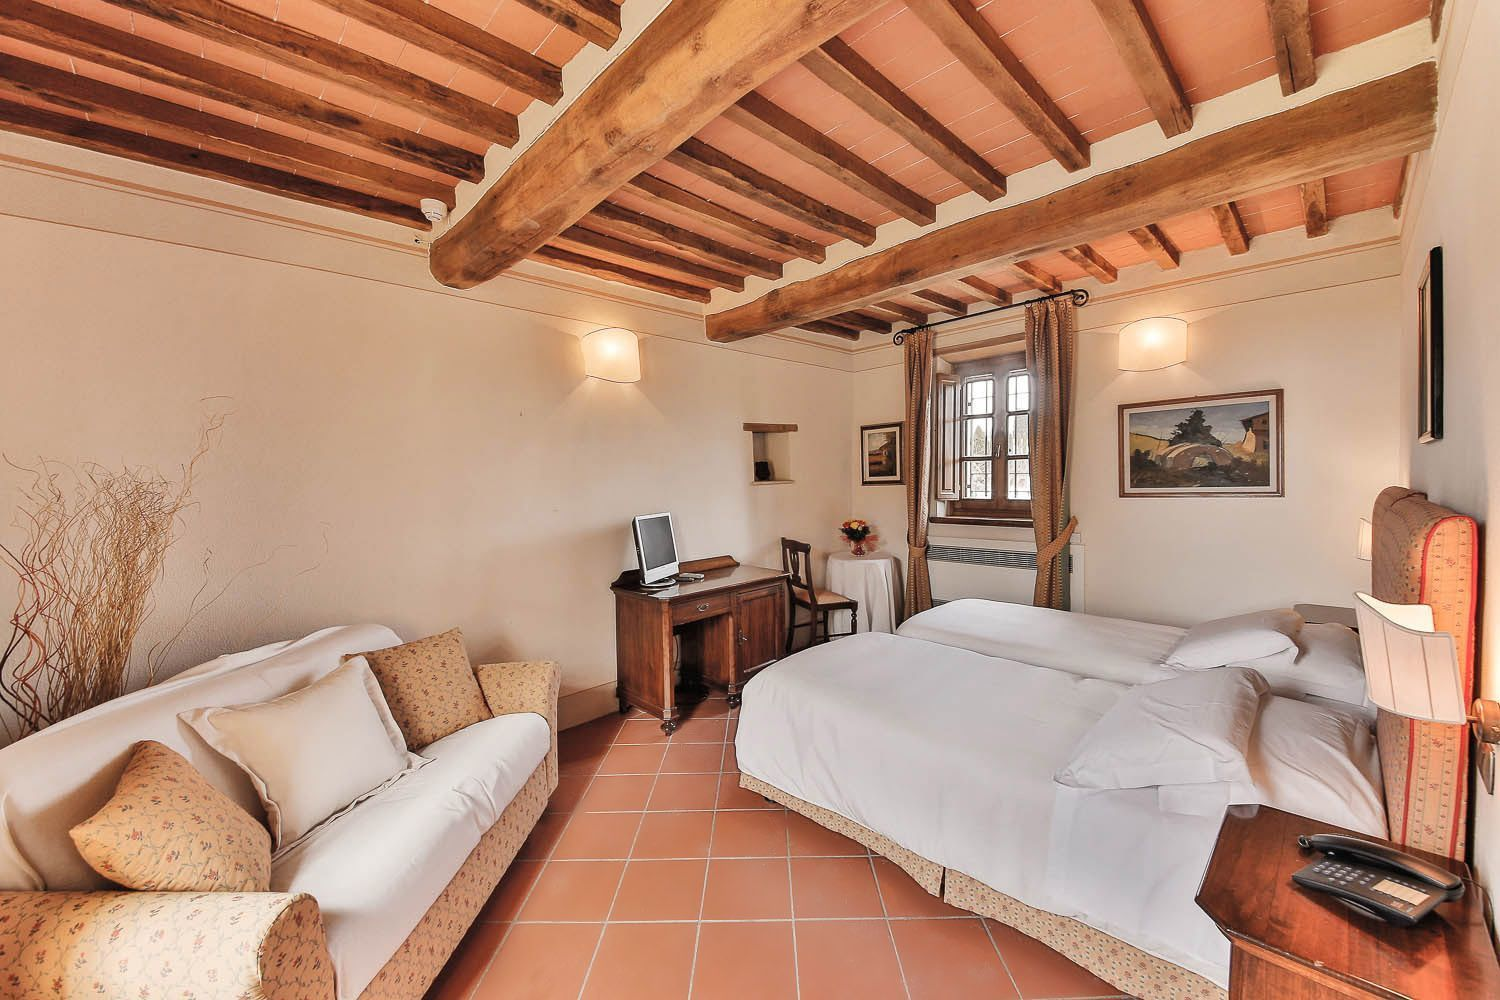 sleeps 22 in 9 bedrooms pietraviva vacation rental tuscany italy